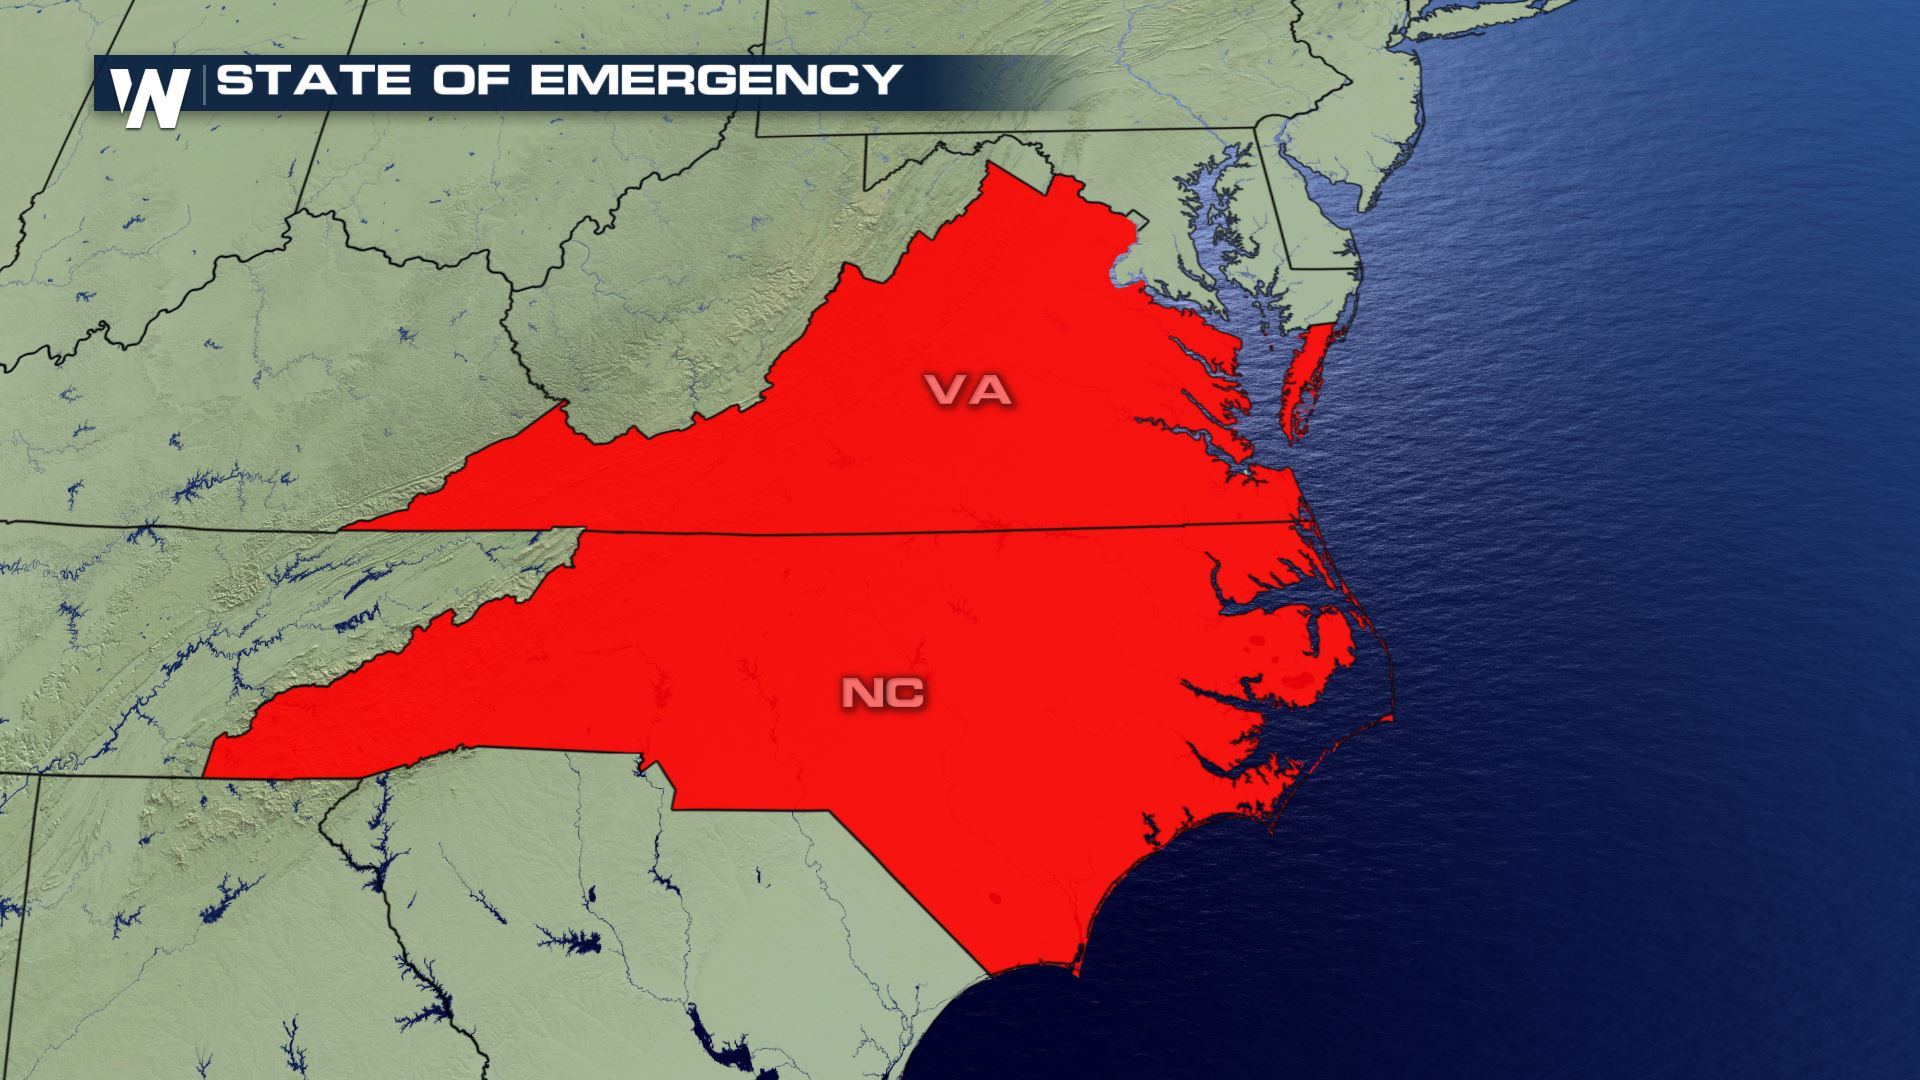 Governor Northam Issues State of Emergency for Virginia